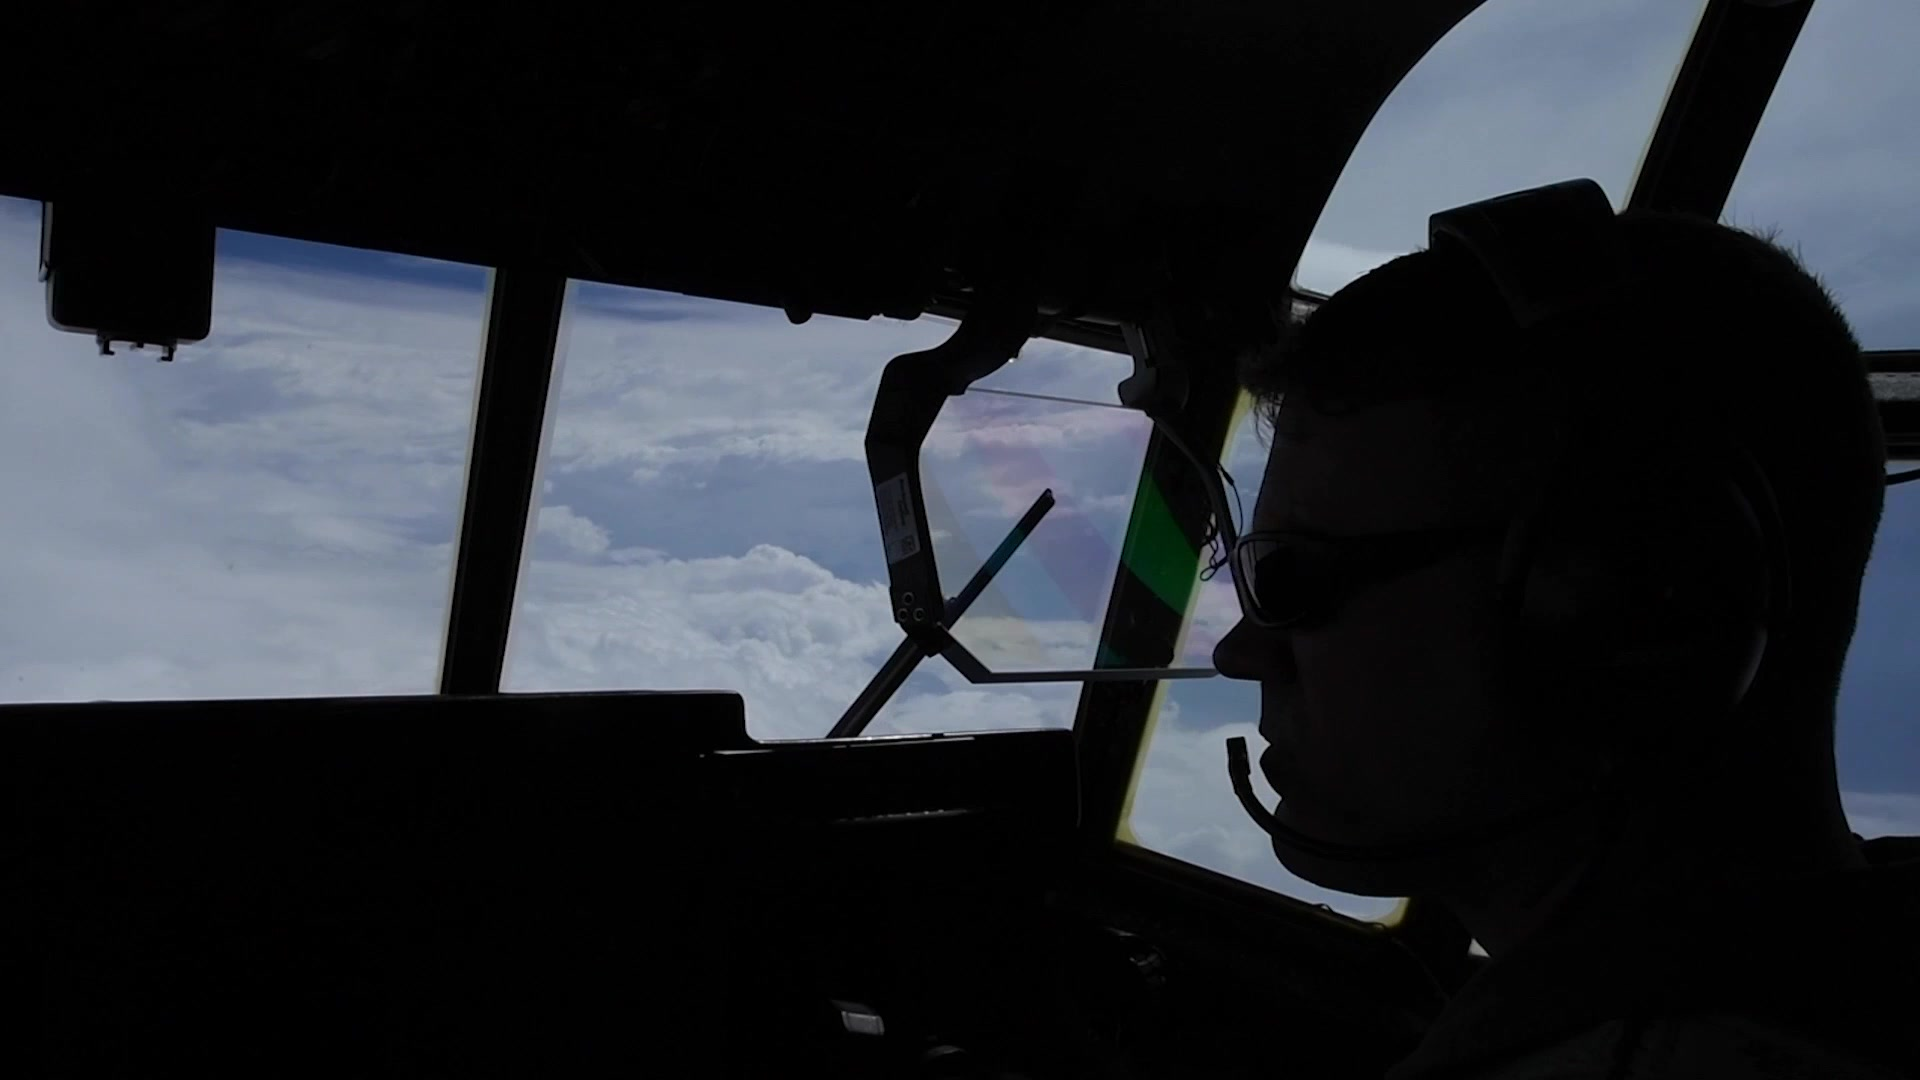 The Air Force Reserve Hurricane Hunters flew Hurricane Florence providing forecasters at the National Hurricane Center life-saving storm data. Flying in the heart of Mother's Nature's fury, the WC-130J Super Hercules and its Reserve Citizen Airmen aircrew collect atmospheric data and transmit via satellite to forecasters. The Air Force Reserve has the only operational weather reconnaissance squadron in the world, dating it's history to 1943. (U.S. Air Force video by Tech. Sgt. Chris Hibben)